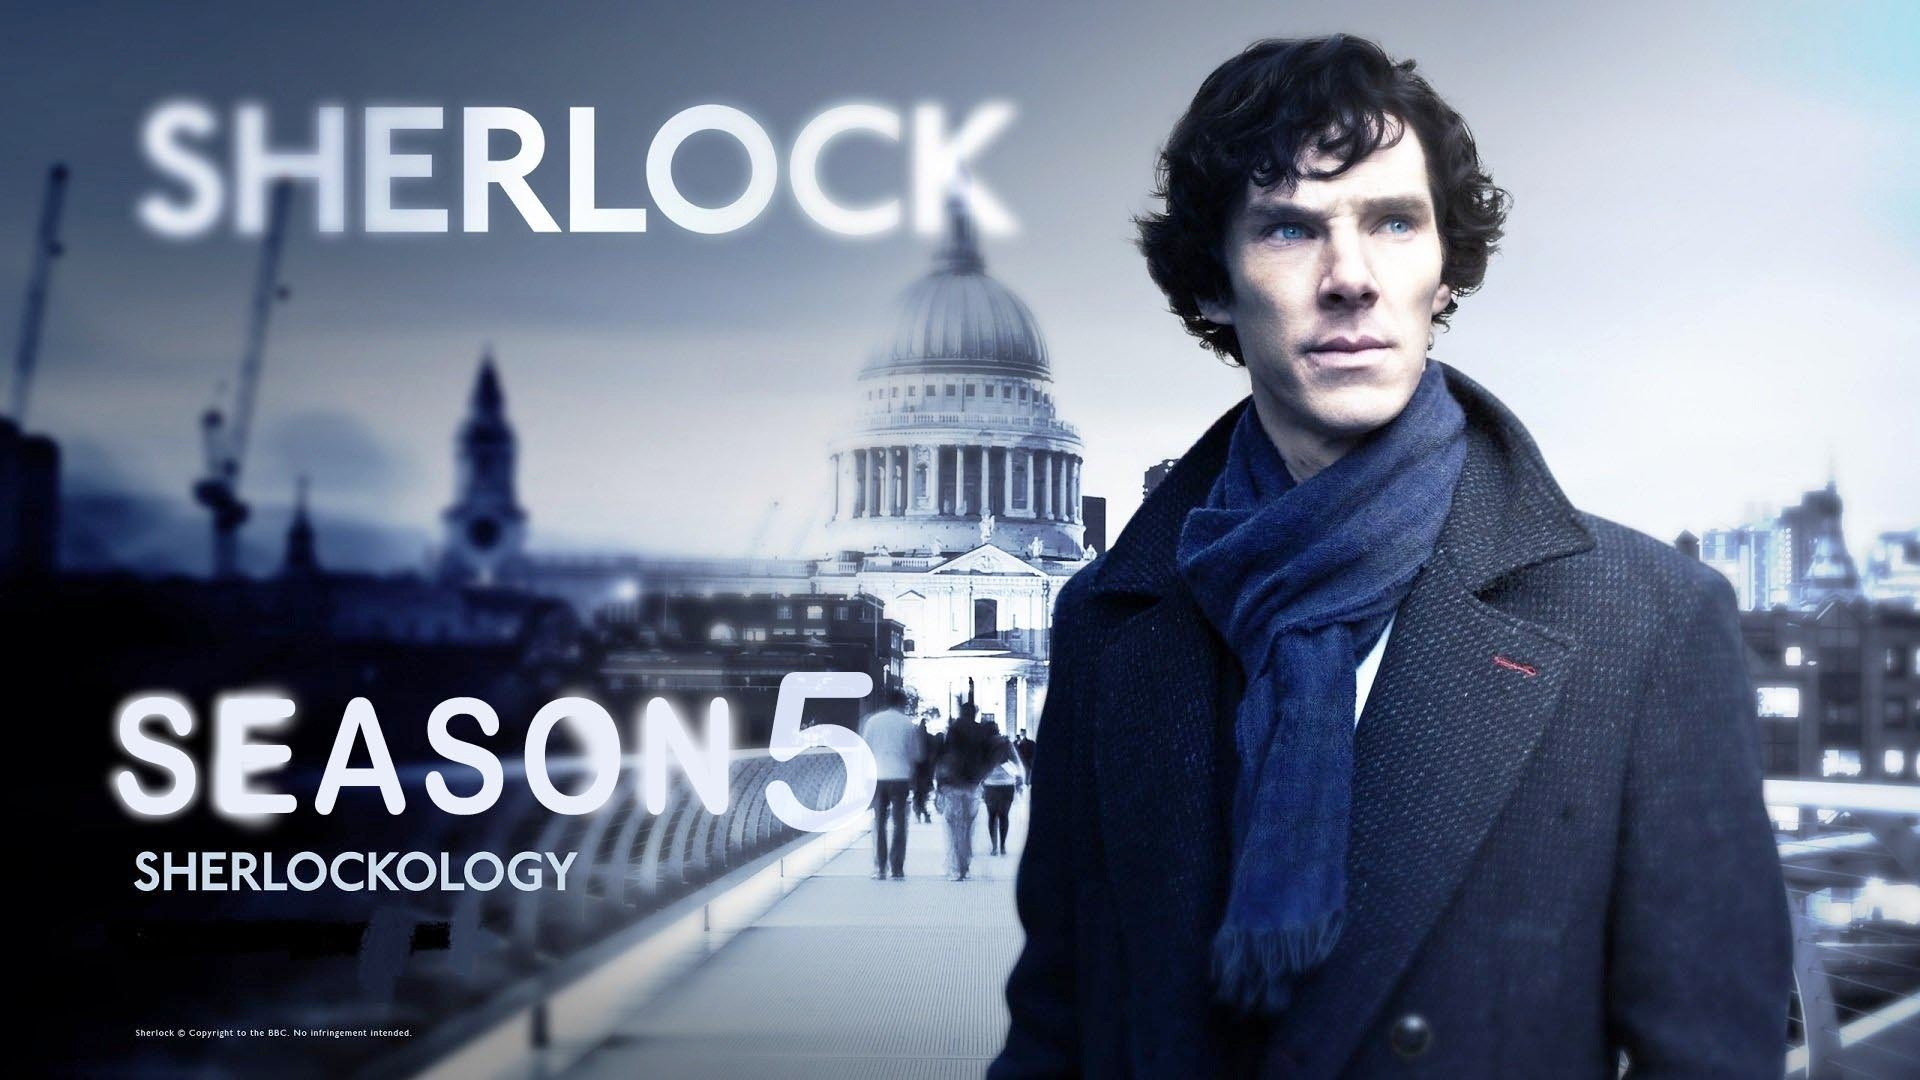 Sherlock Season 5 Release Date, Cast and Latest News